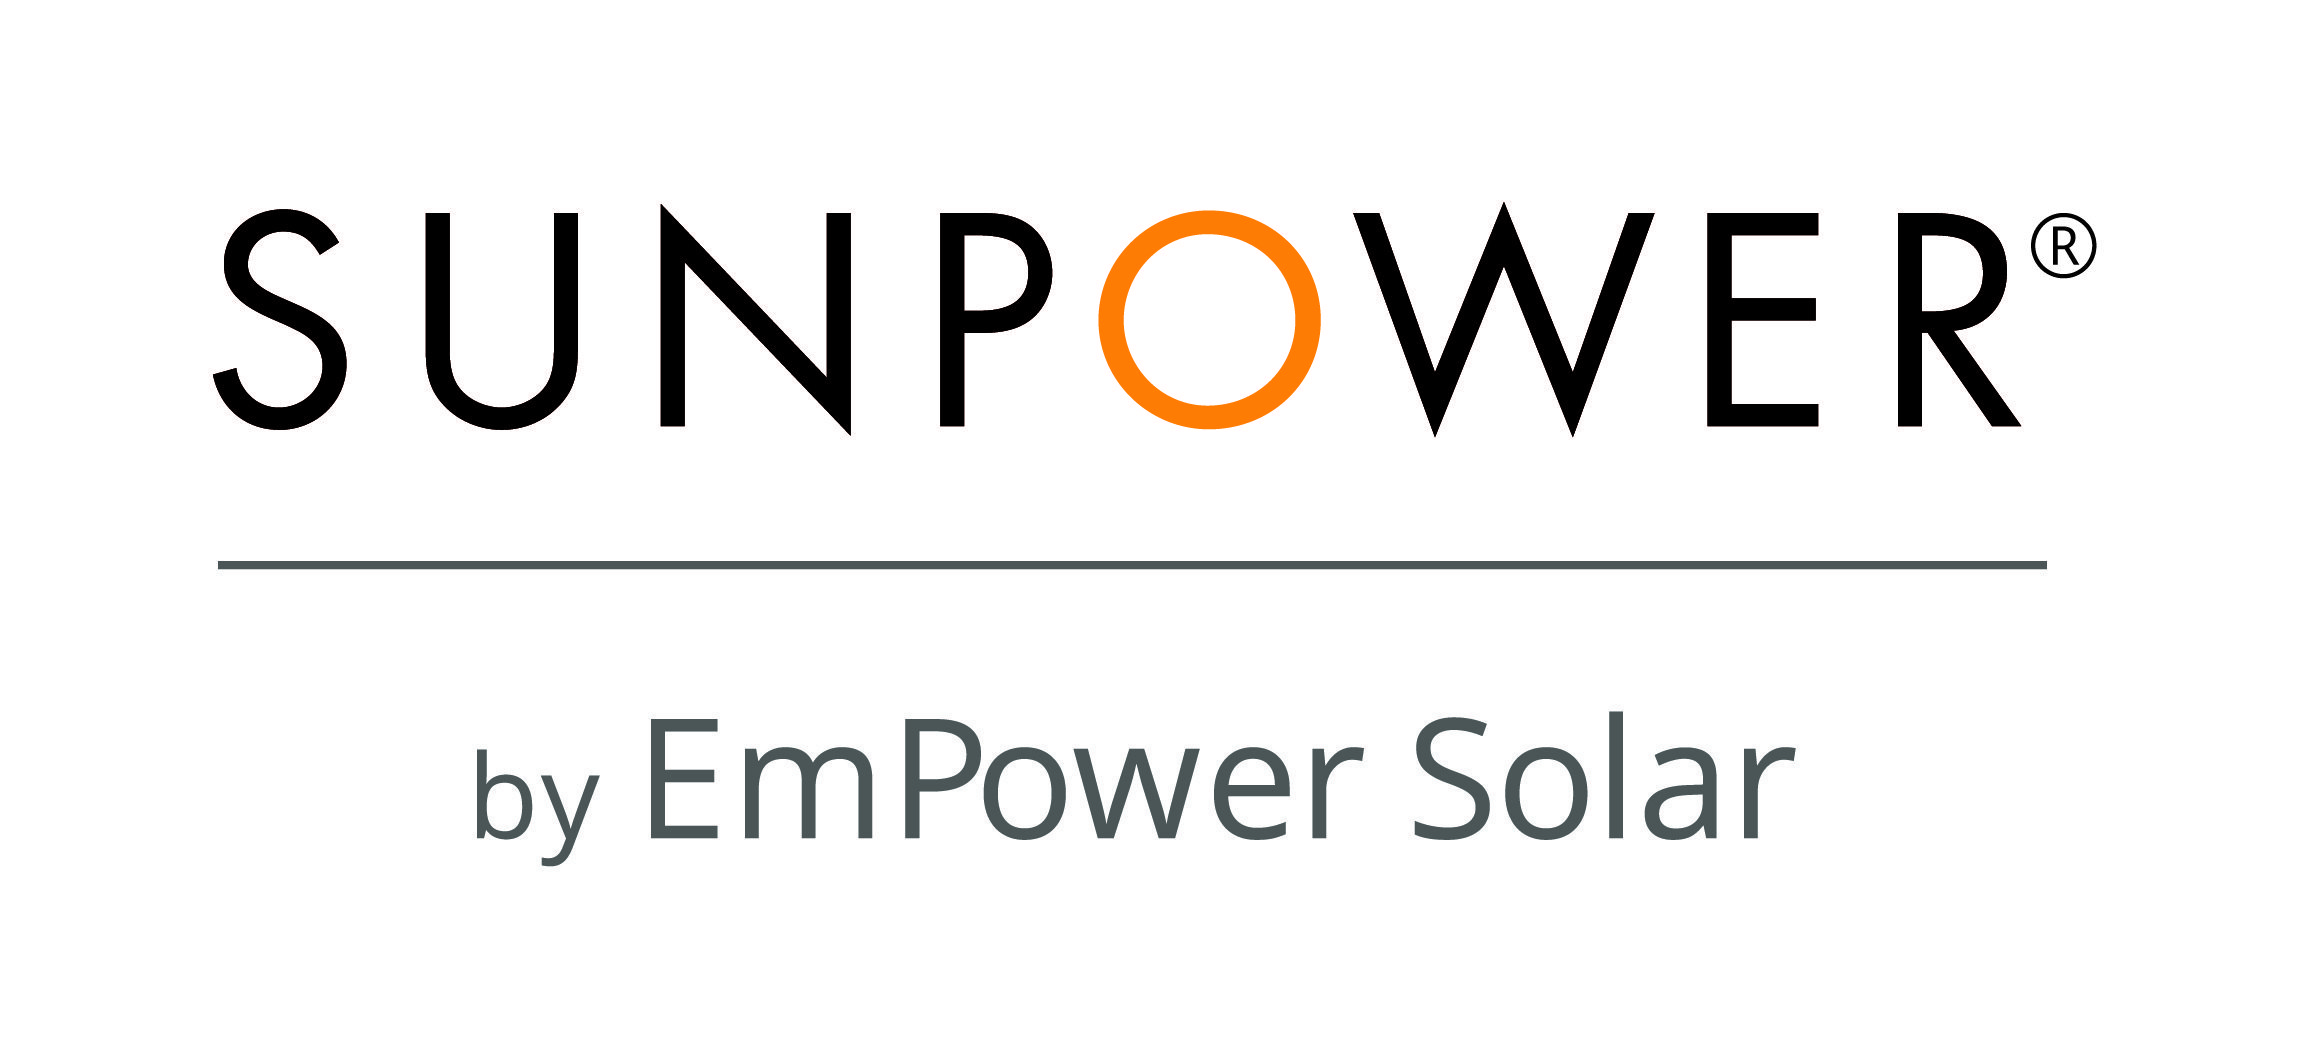 Save immediately on electric bills with lease, loan, or purchase packages! SunPower Solar panels, electric vehicle charging & battery solutions.